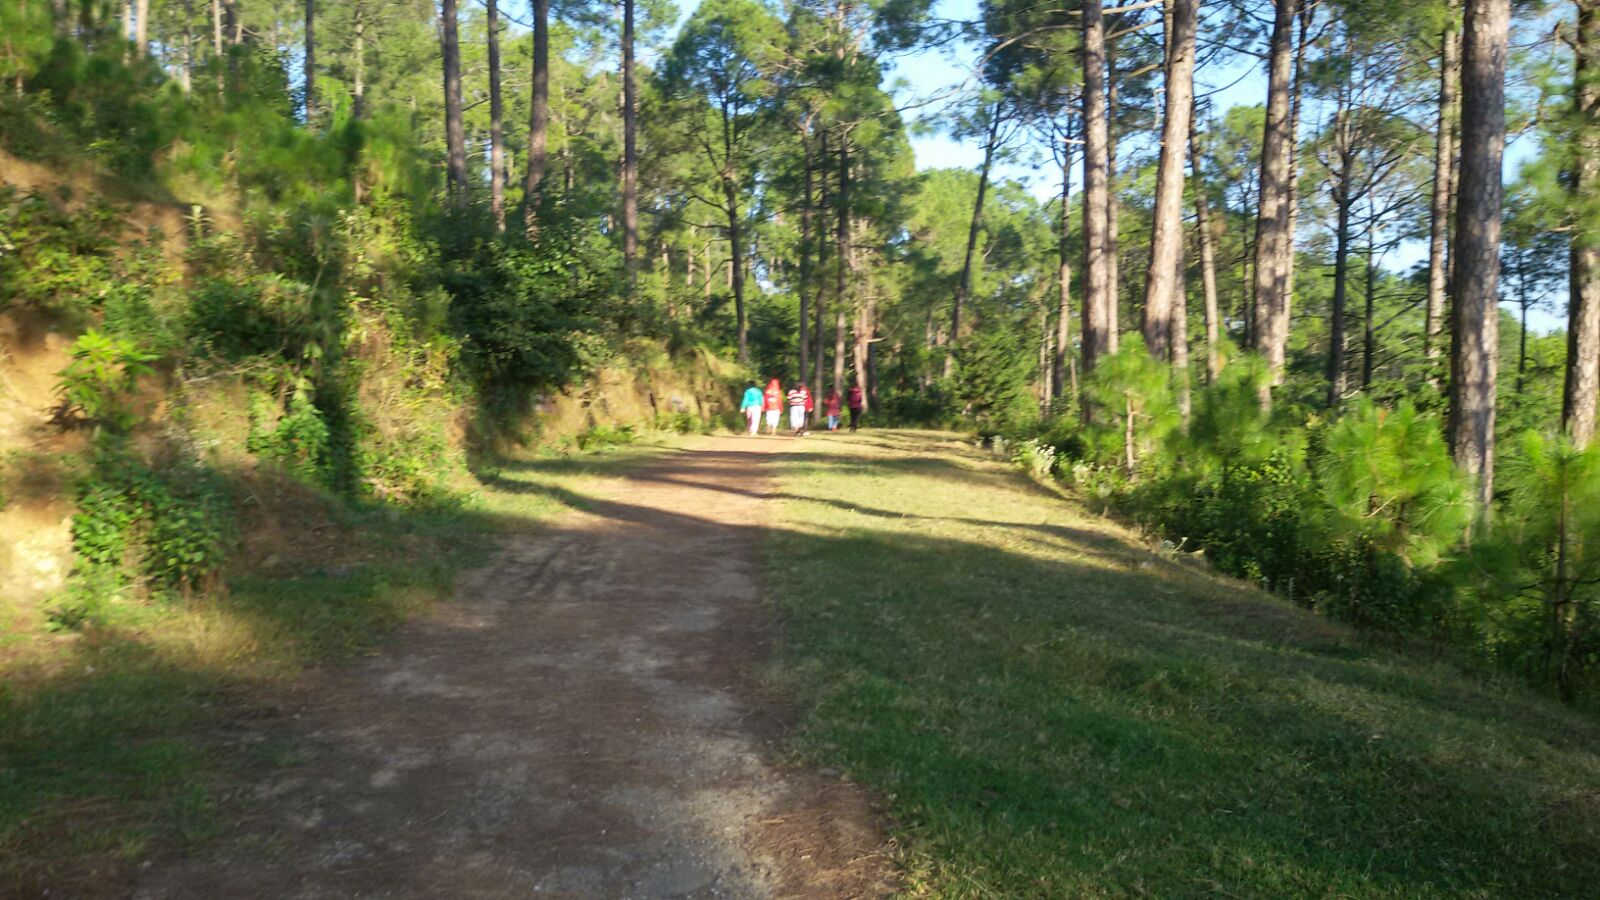 Kasauli Travel Guide 2020, How To Reach, Places To Visit & Much More! 5